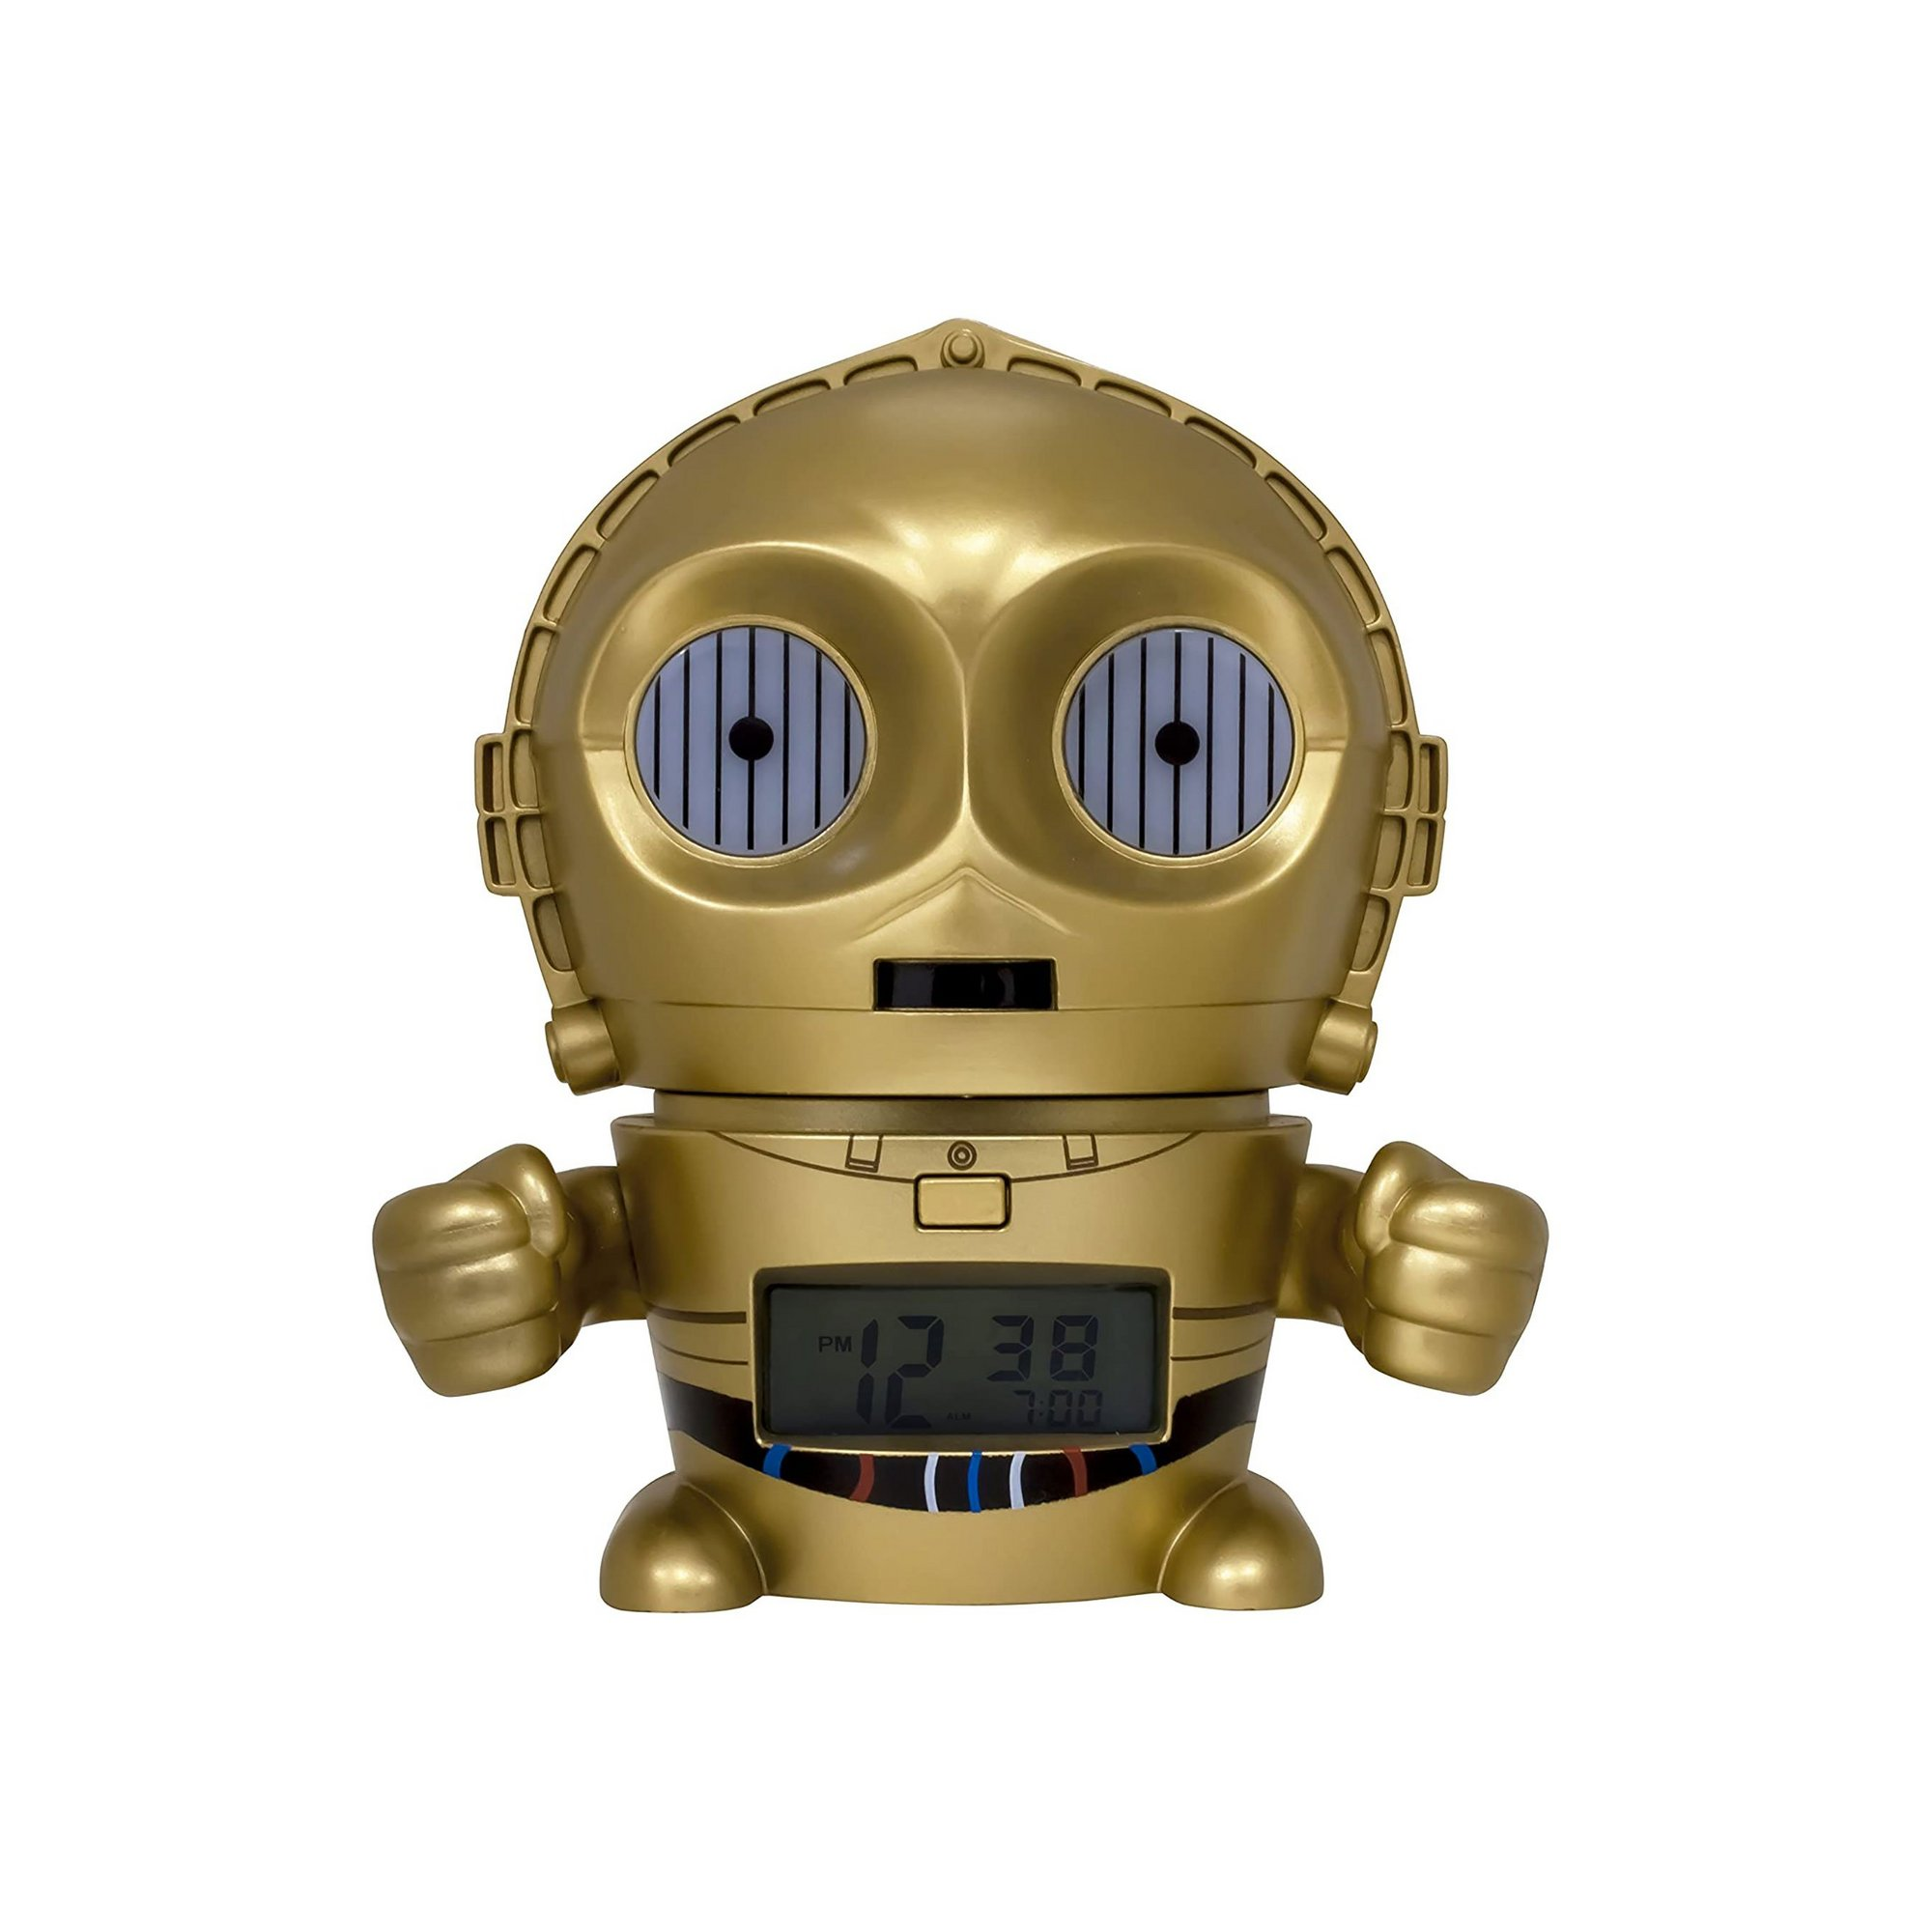 Image of Star Wars C-3PO Night Light Alarm Clock